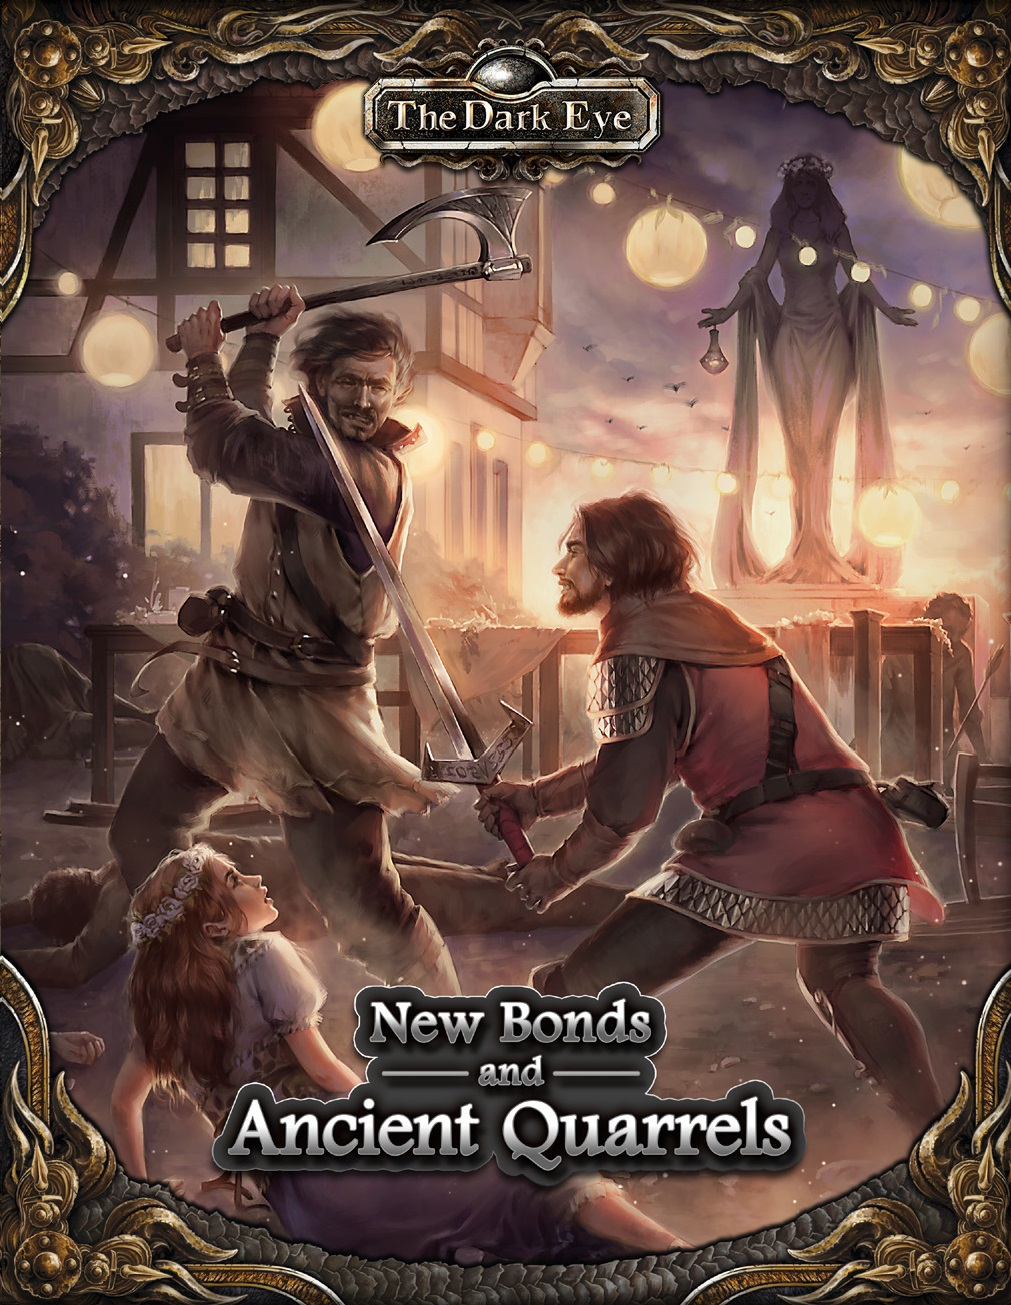 New Bonds and Ancient Quarrels: The Dark Eye RPG -  Ulisses Spiele